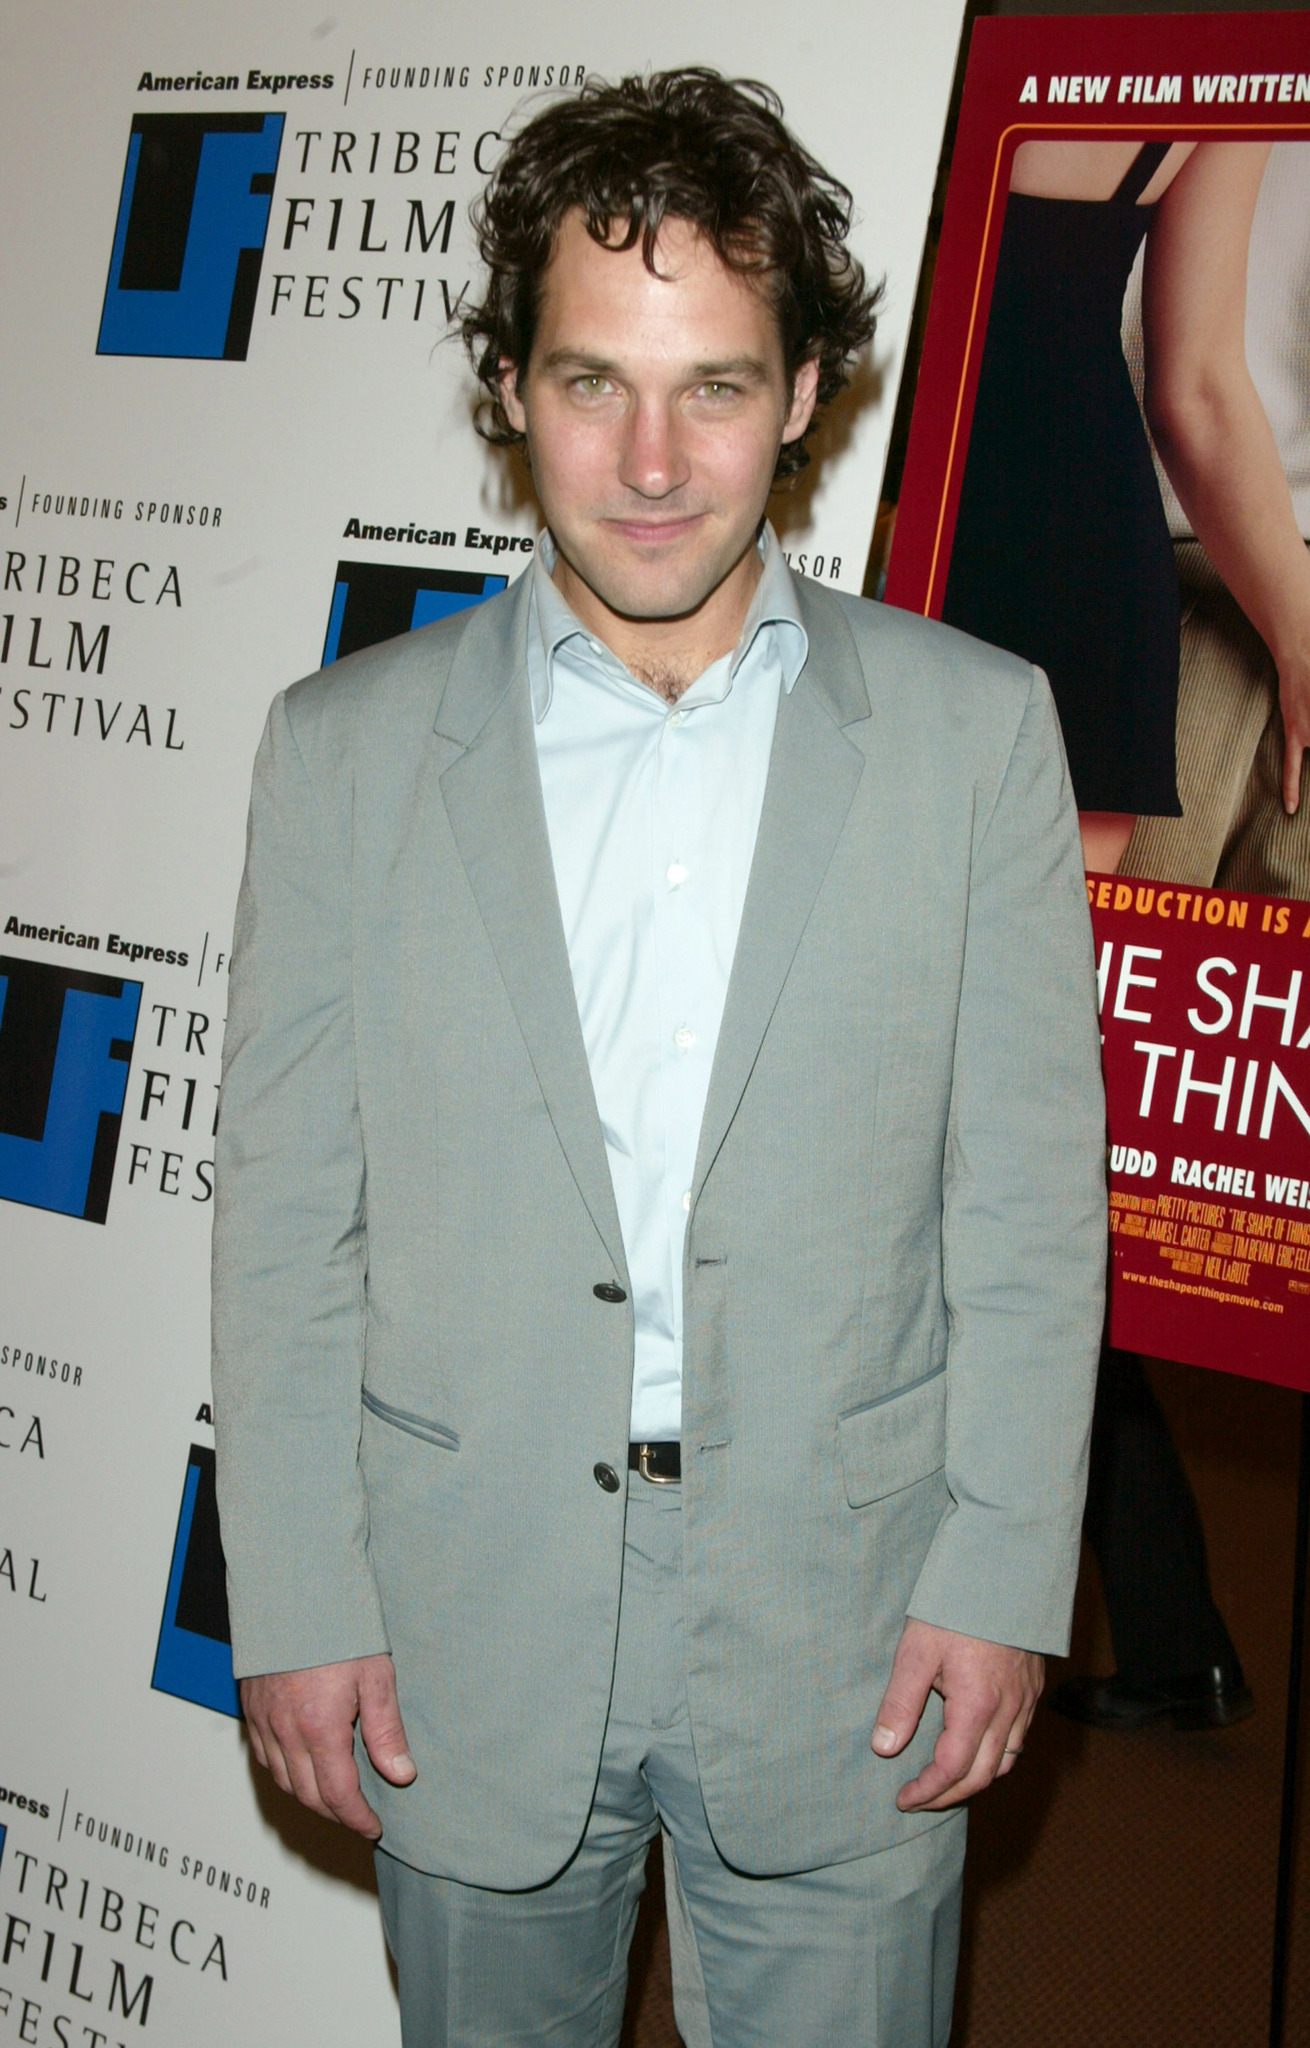 Paul Rudd at an event for The Shape of Things (2003)